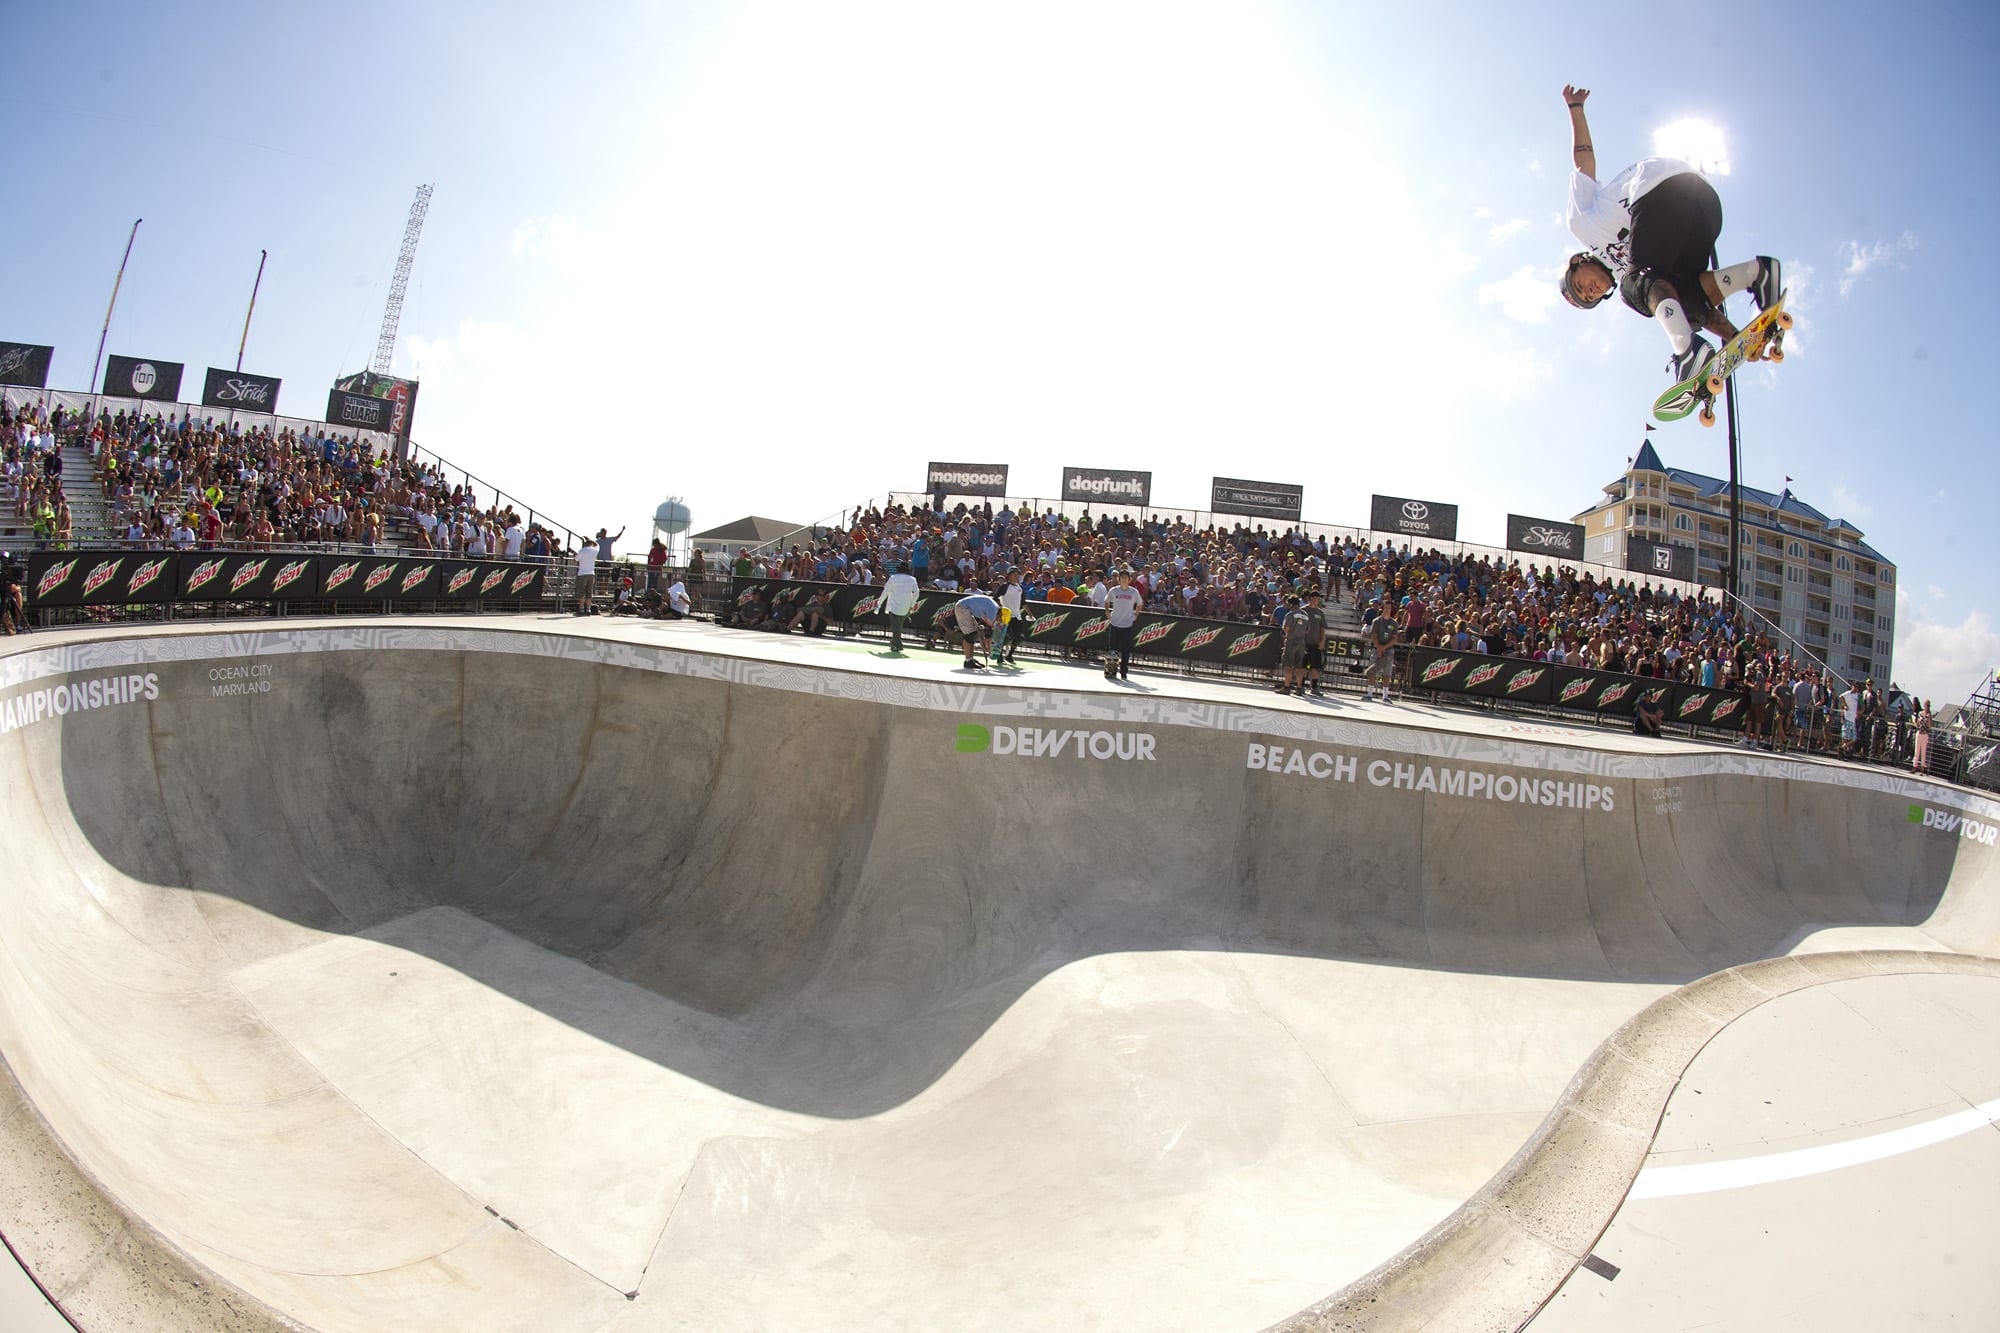 Dew Tour Announces 2014 Skate Schedule